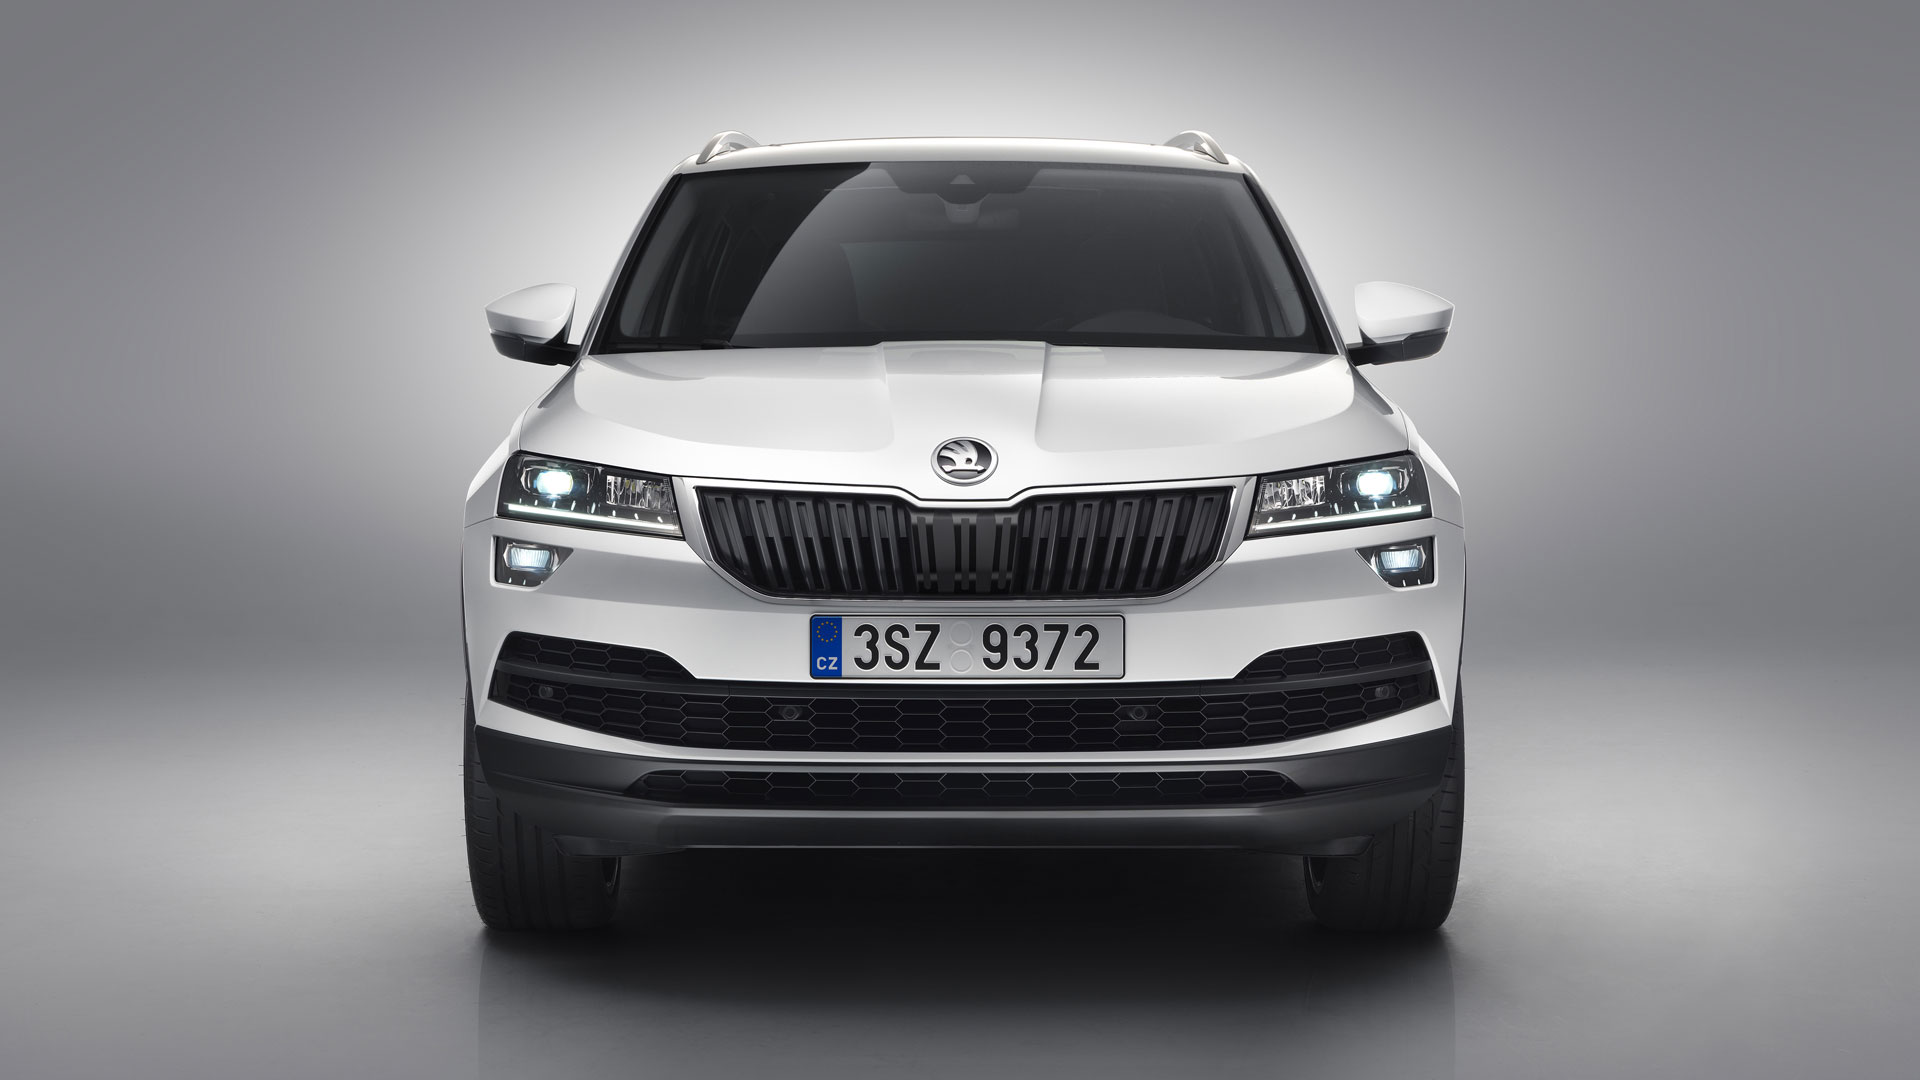 skoda karoq premieres in stockholm autodevot. Black Bedroom Furniture Sets. Home Design Ideas